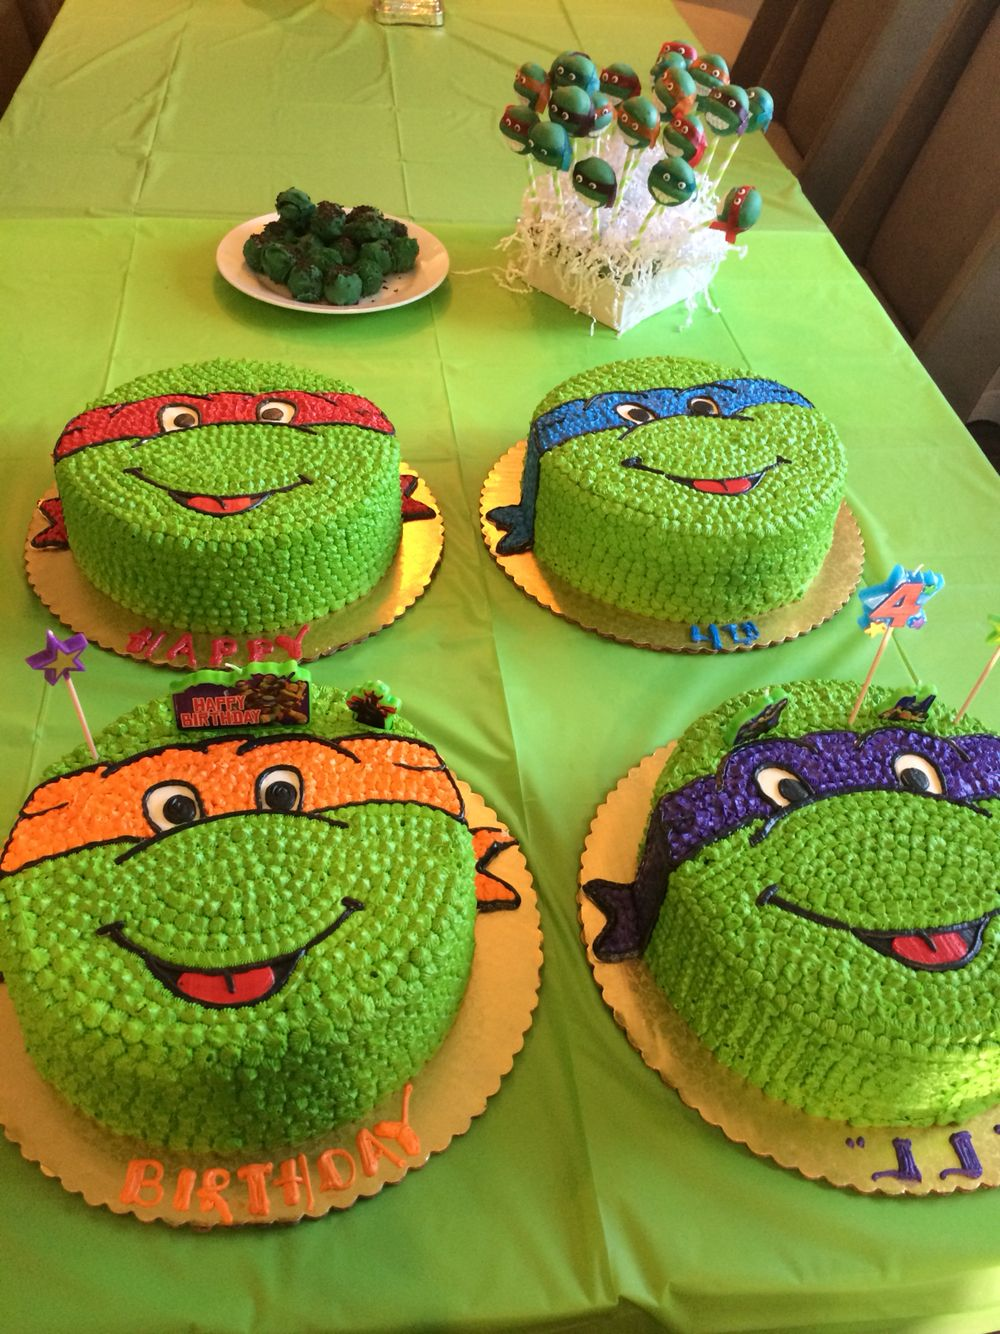 Ninja Turtle Cakes In 2019 Ninja Turtle Birthday Cake